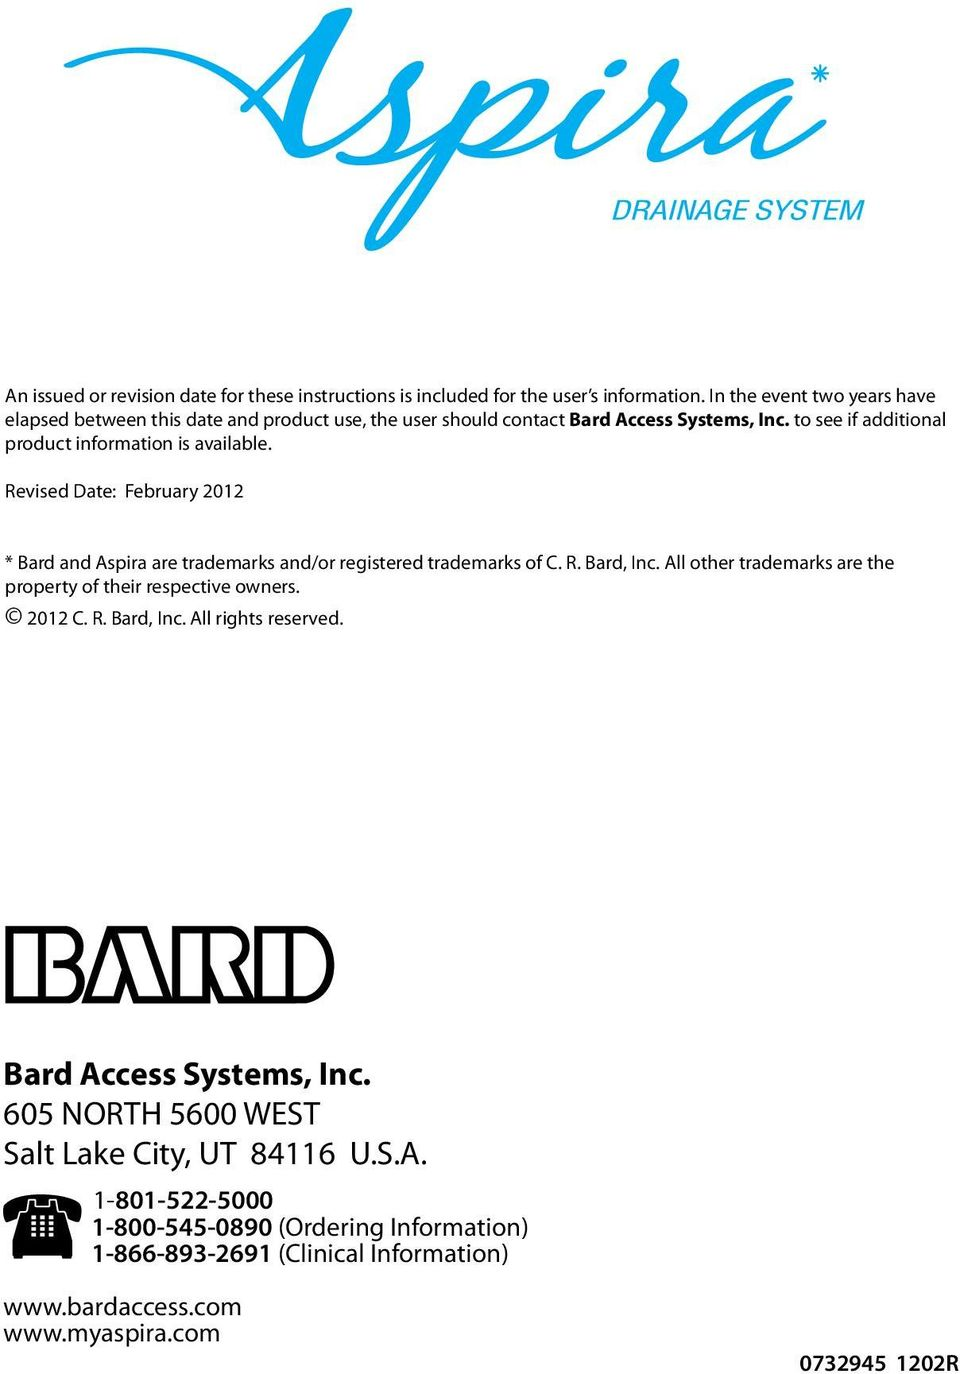 Revised Date: February 2012 * Bard and Aspira are trademarks and/or registered trademarks of C. R. Bard, Inc. All other trademarks are the property of their respective owners.